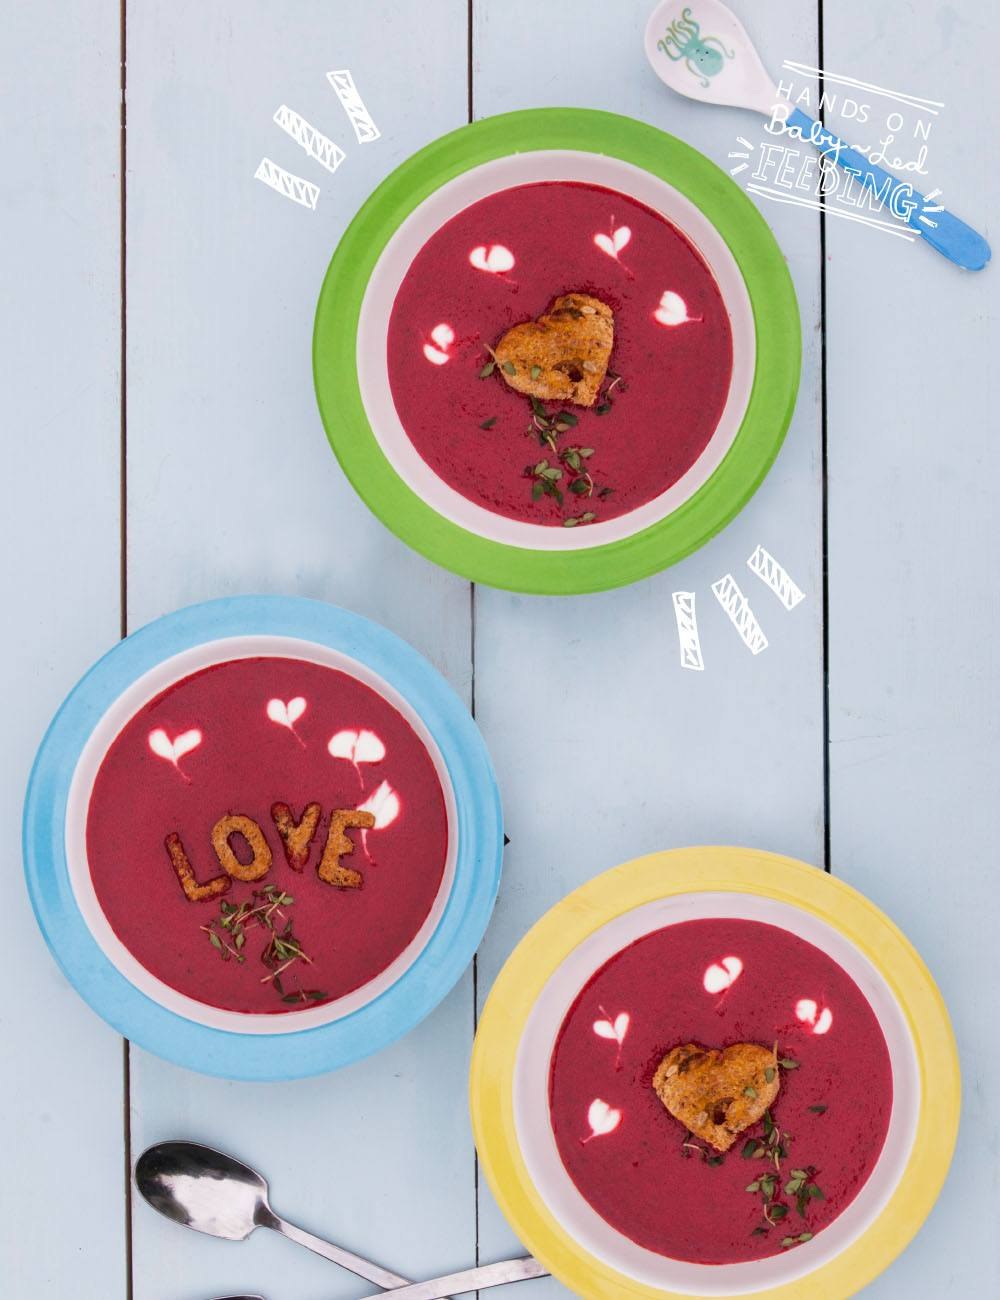 Baby-Led-Feeding-All-you-Need-is-Love-and-this-Beetroot-Soup-Bowls